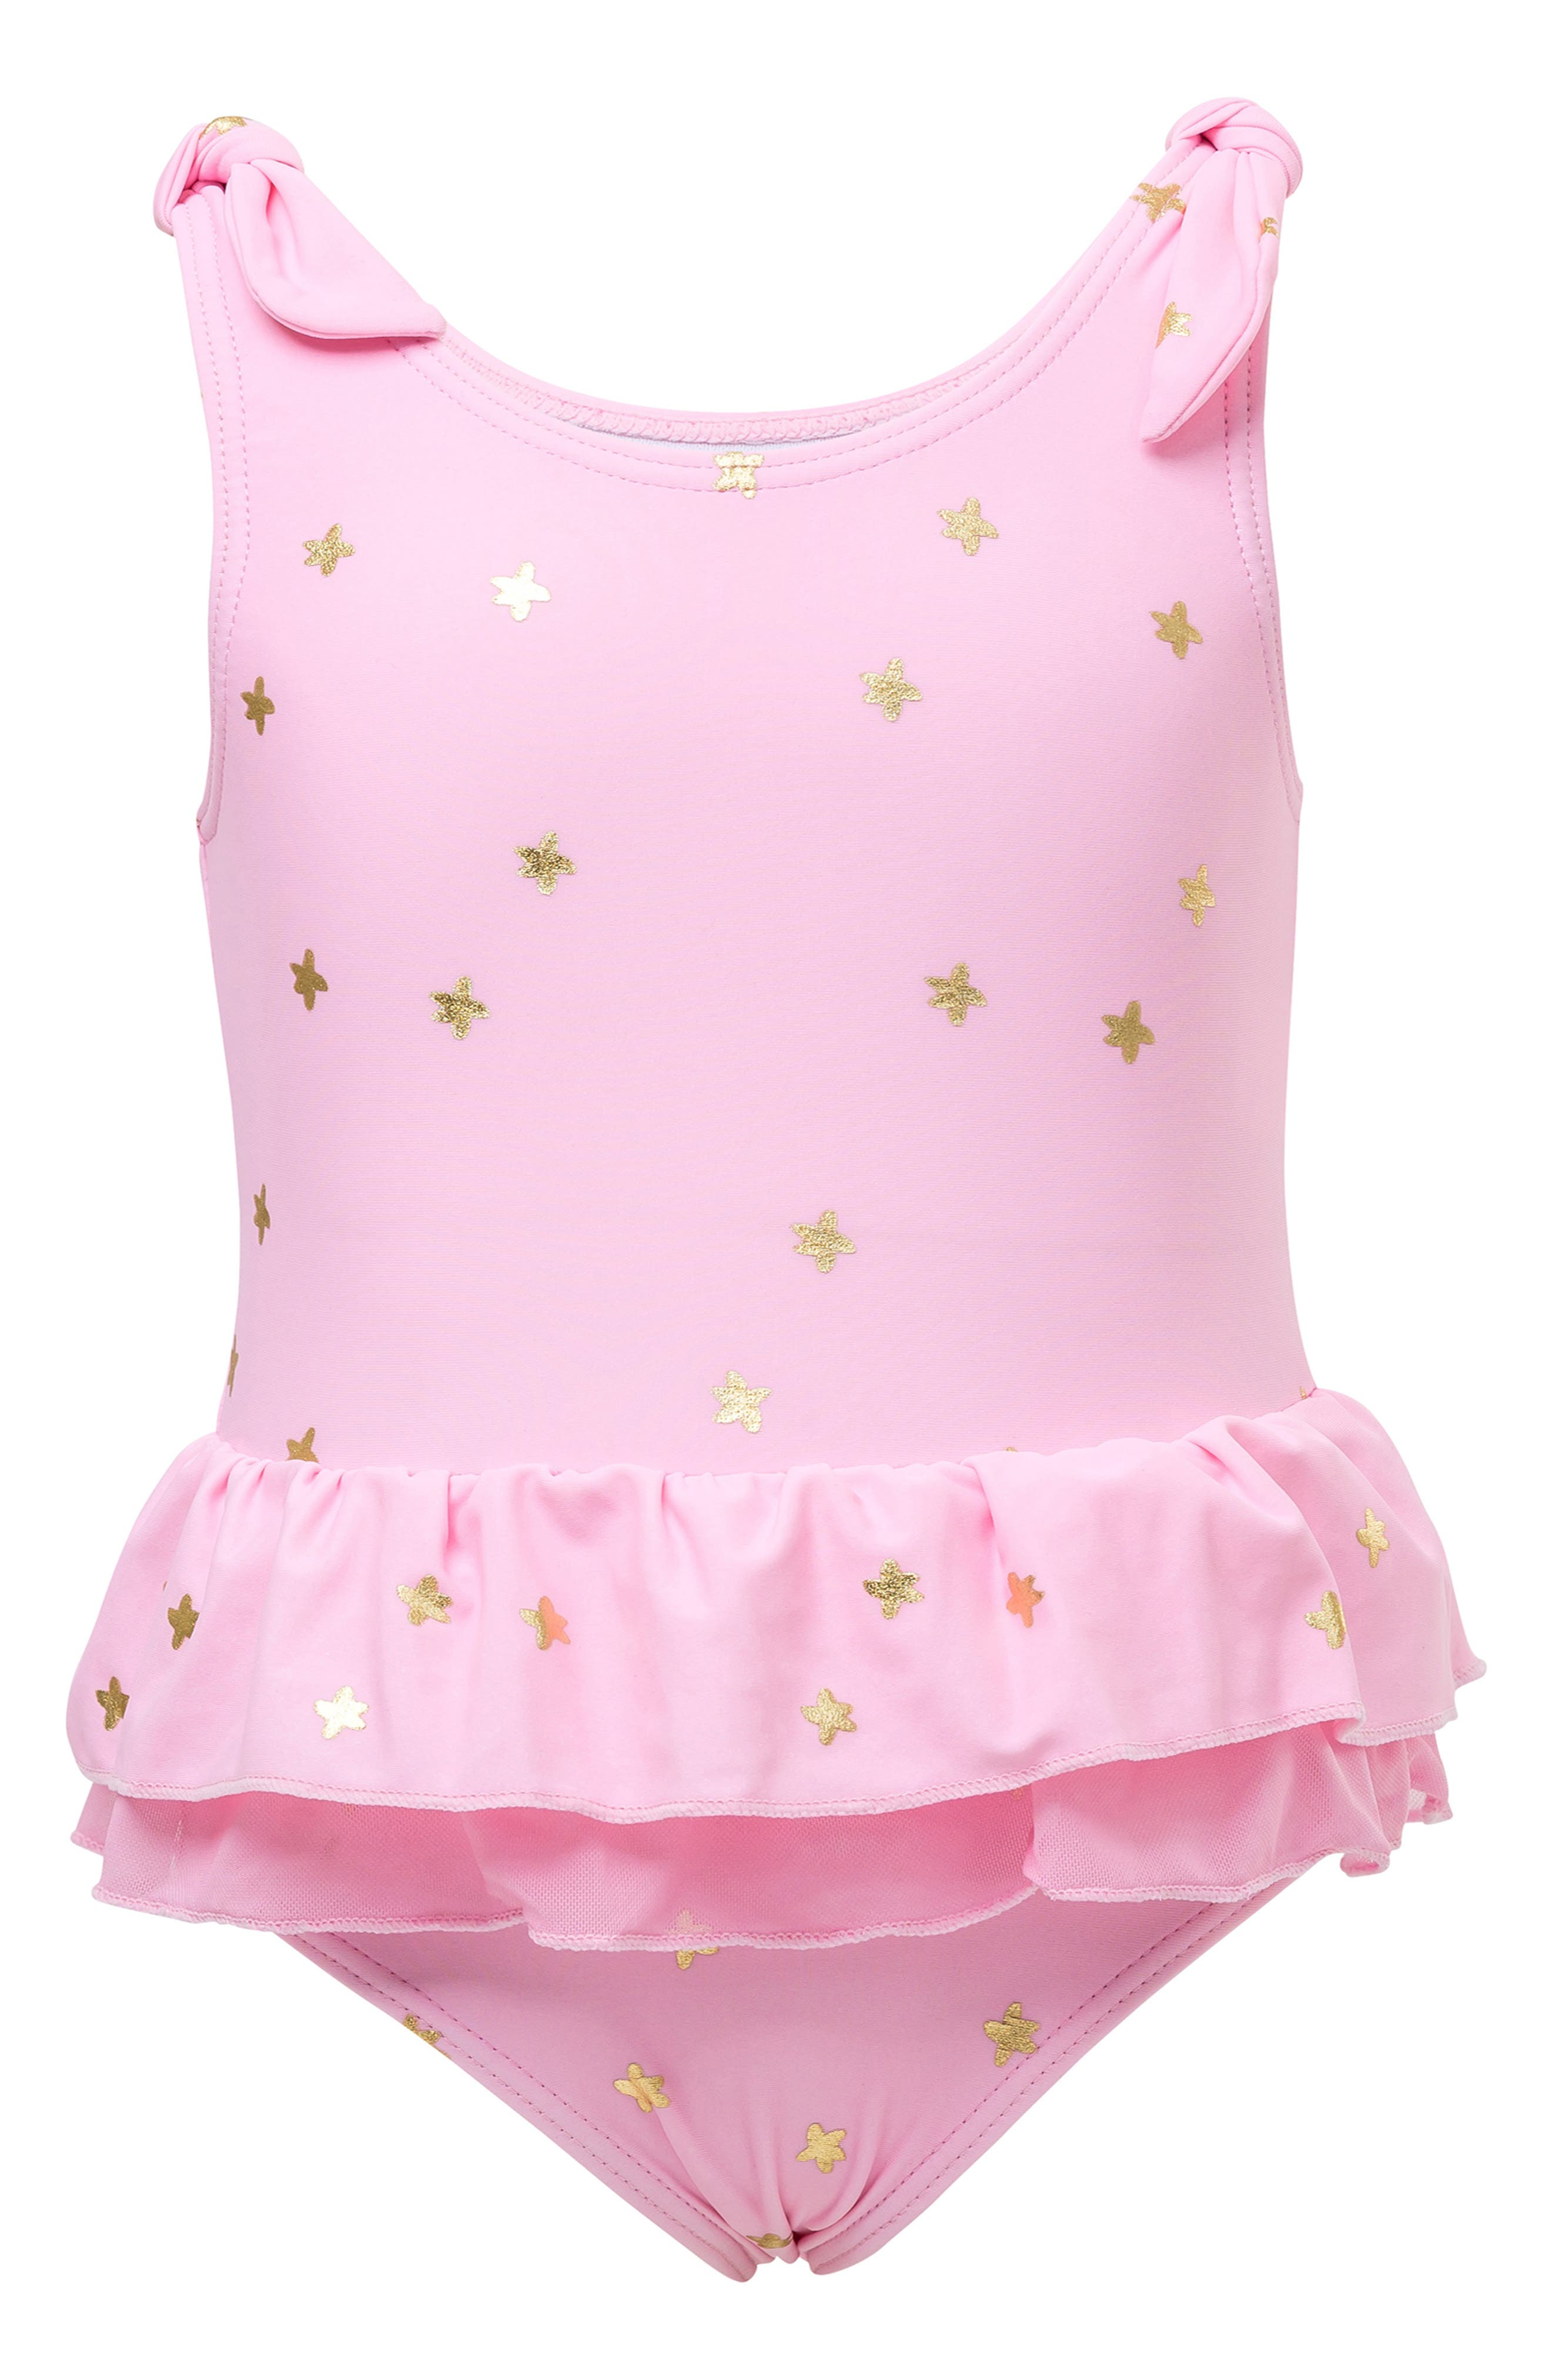 Infant Girls Snapper Rock Gold Stars OnePiece Swimsuit Size 1218M  Pink